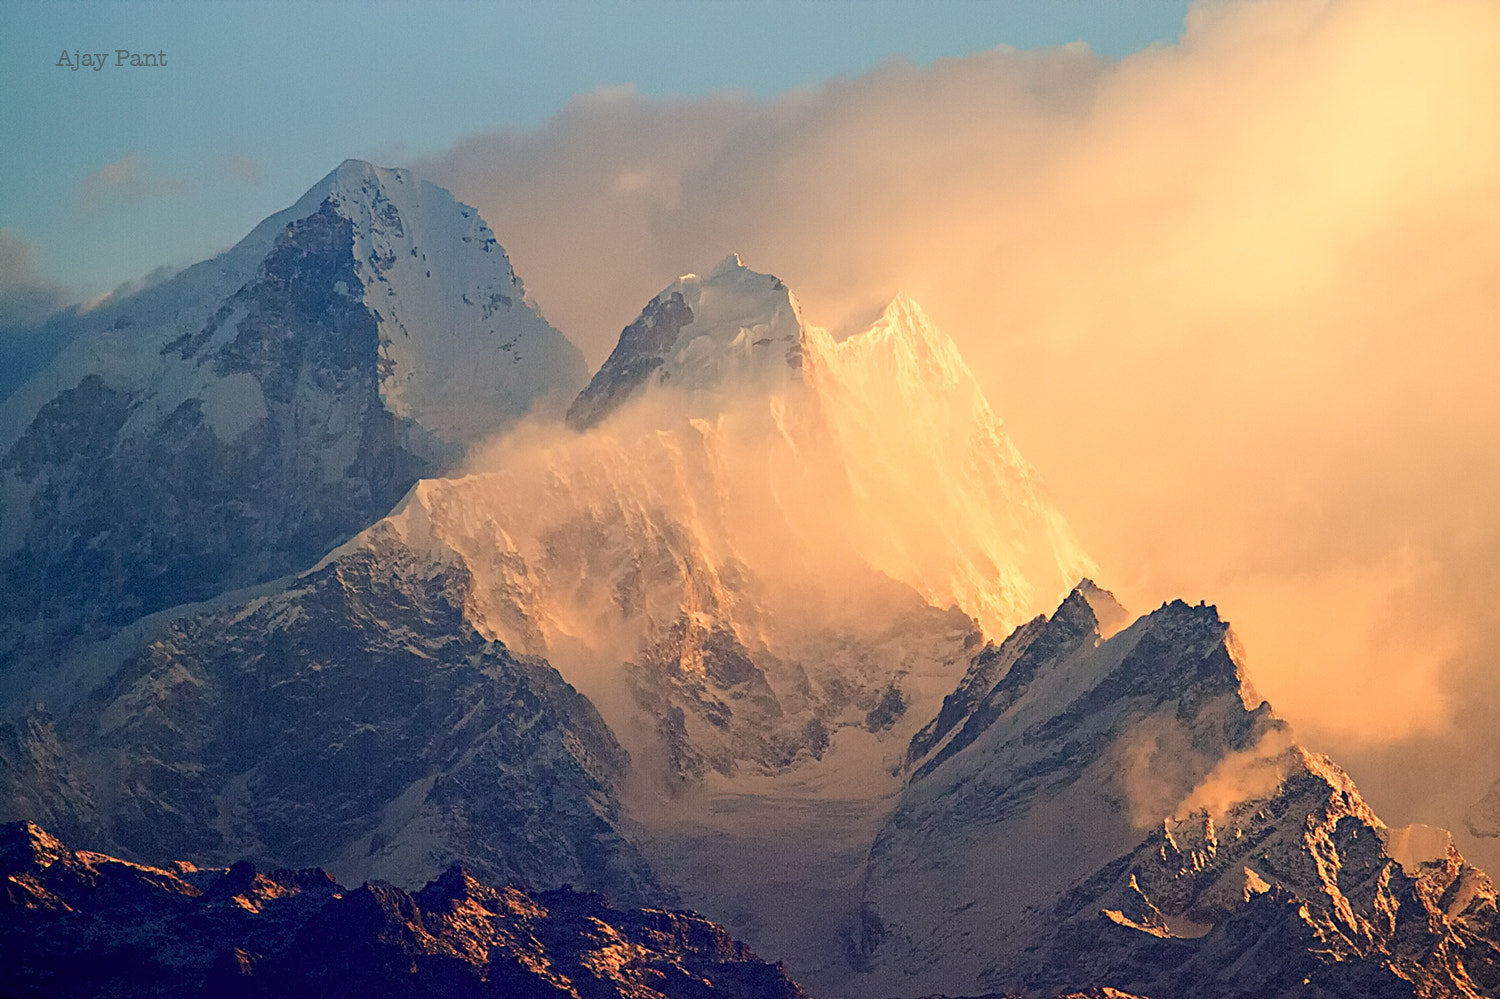 Photograph Sun rising over Himalaya, Nepal by Ajay Pant on 500px